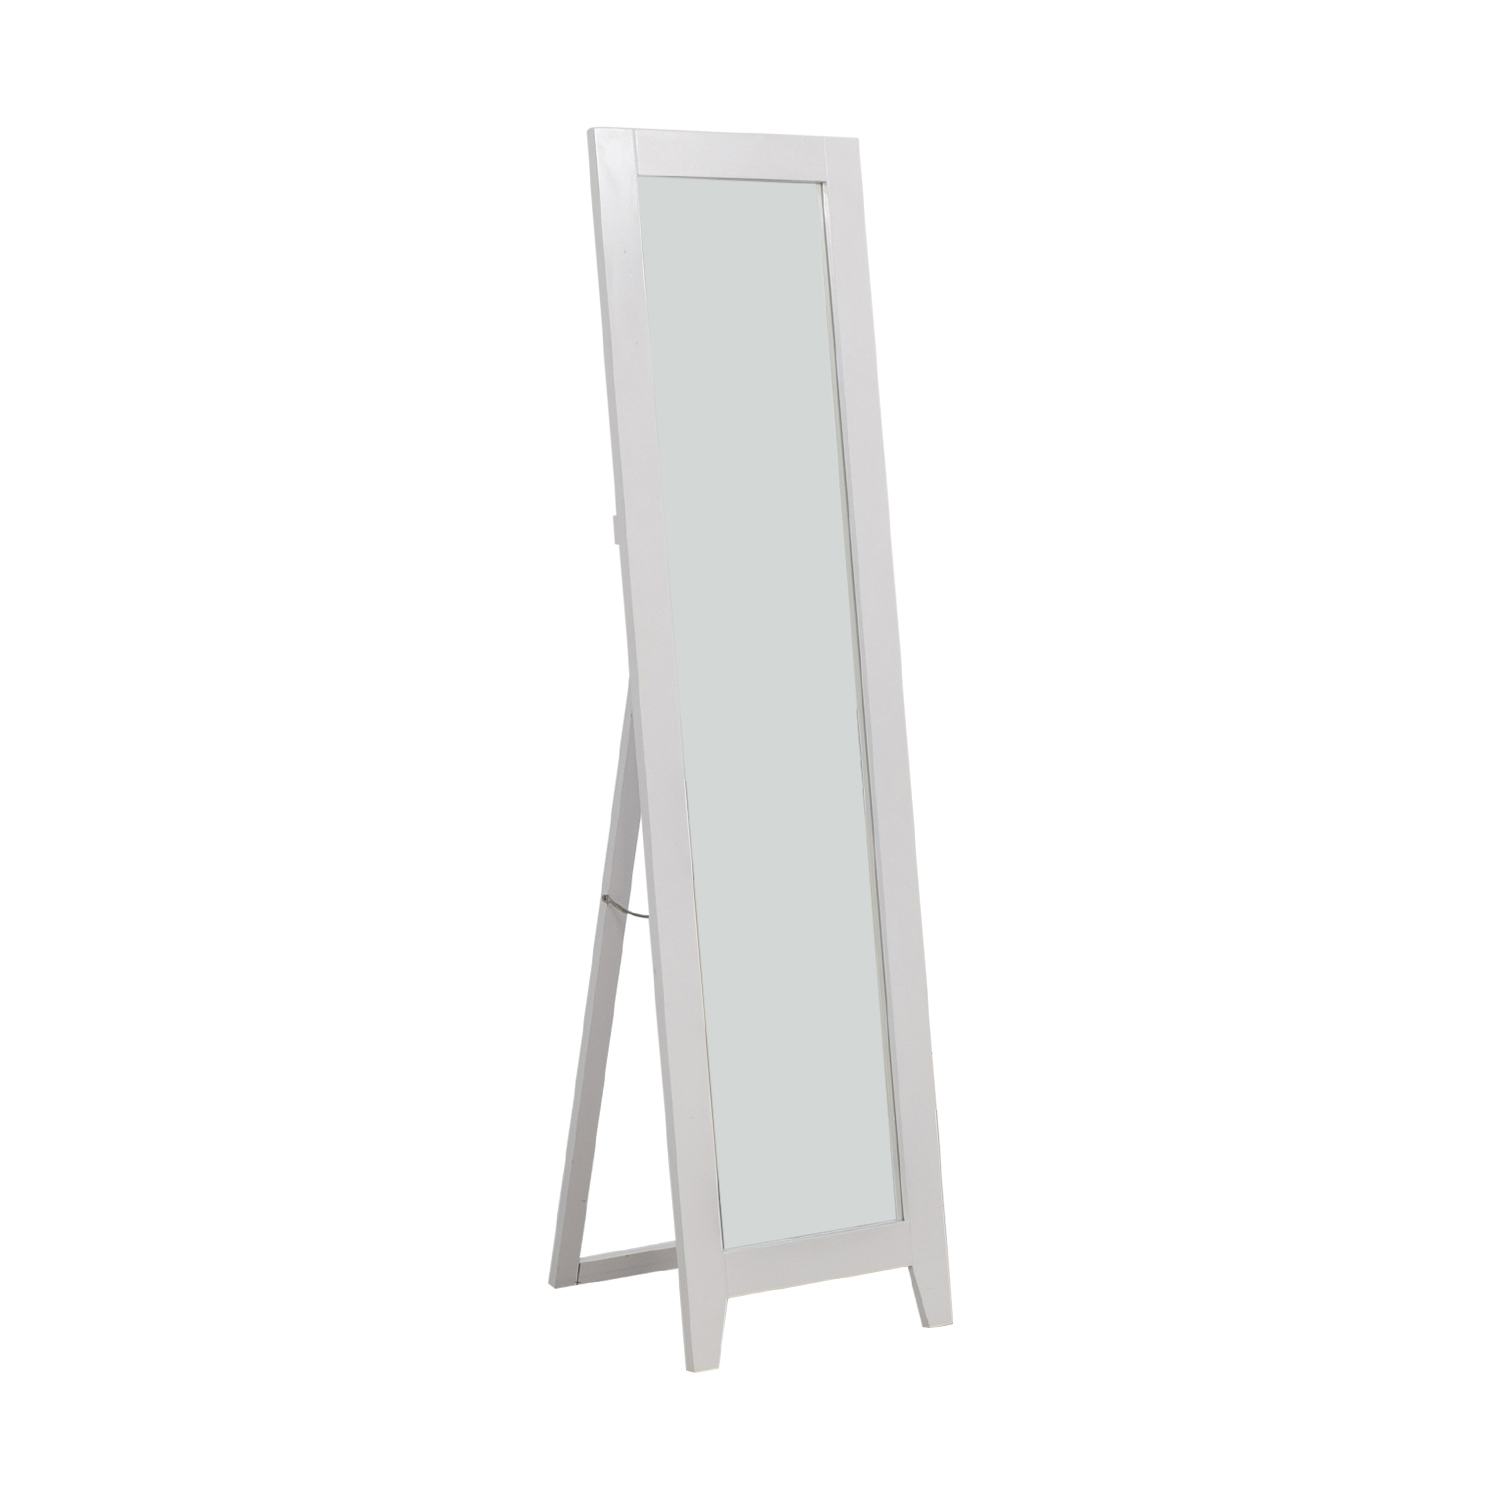 buy King's Brand King's Brand White Wood Framed Floor Mirror online